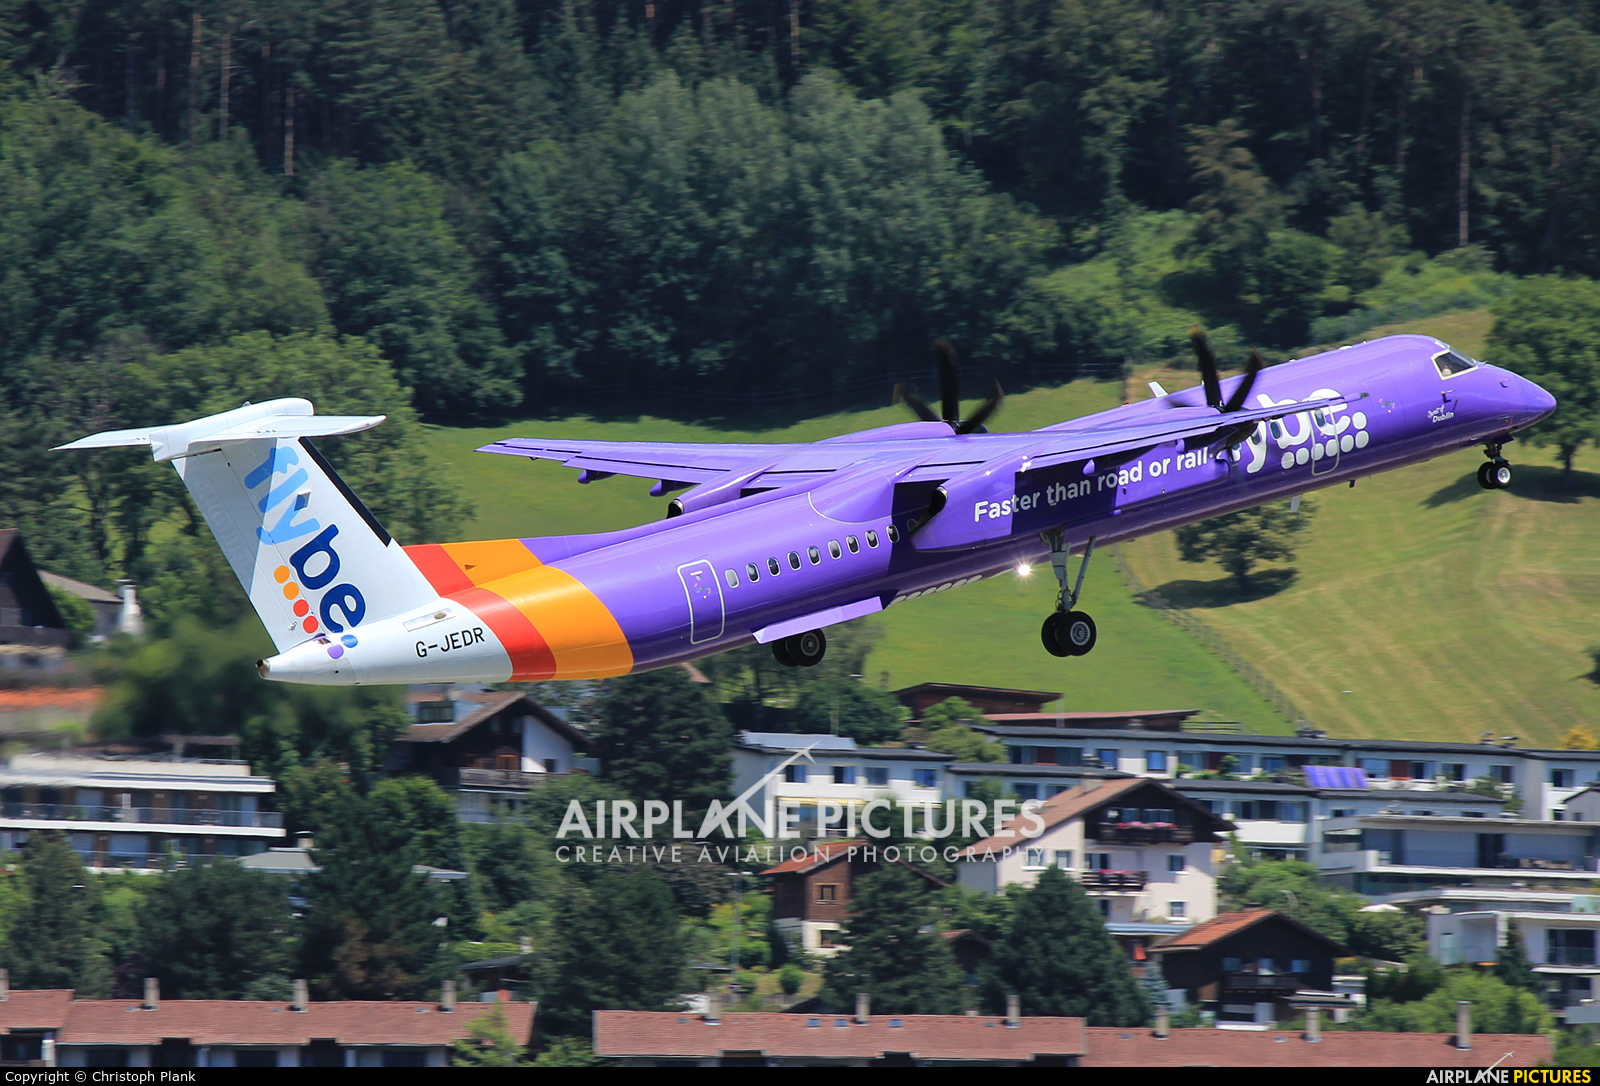 Flybe G-JEDR aircraft at Innsbruck